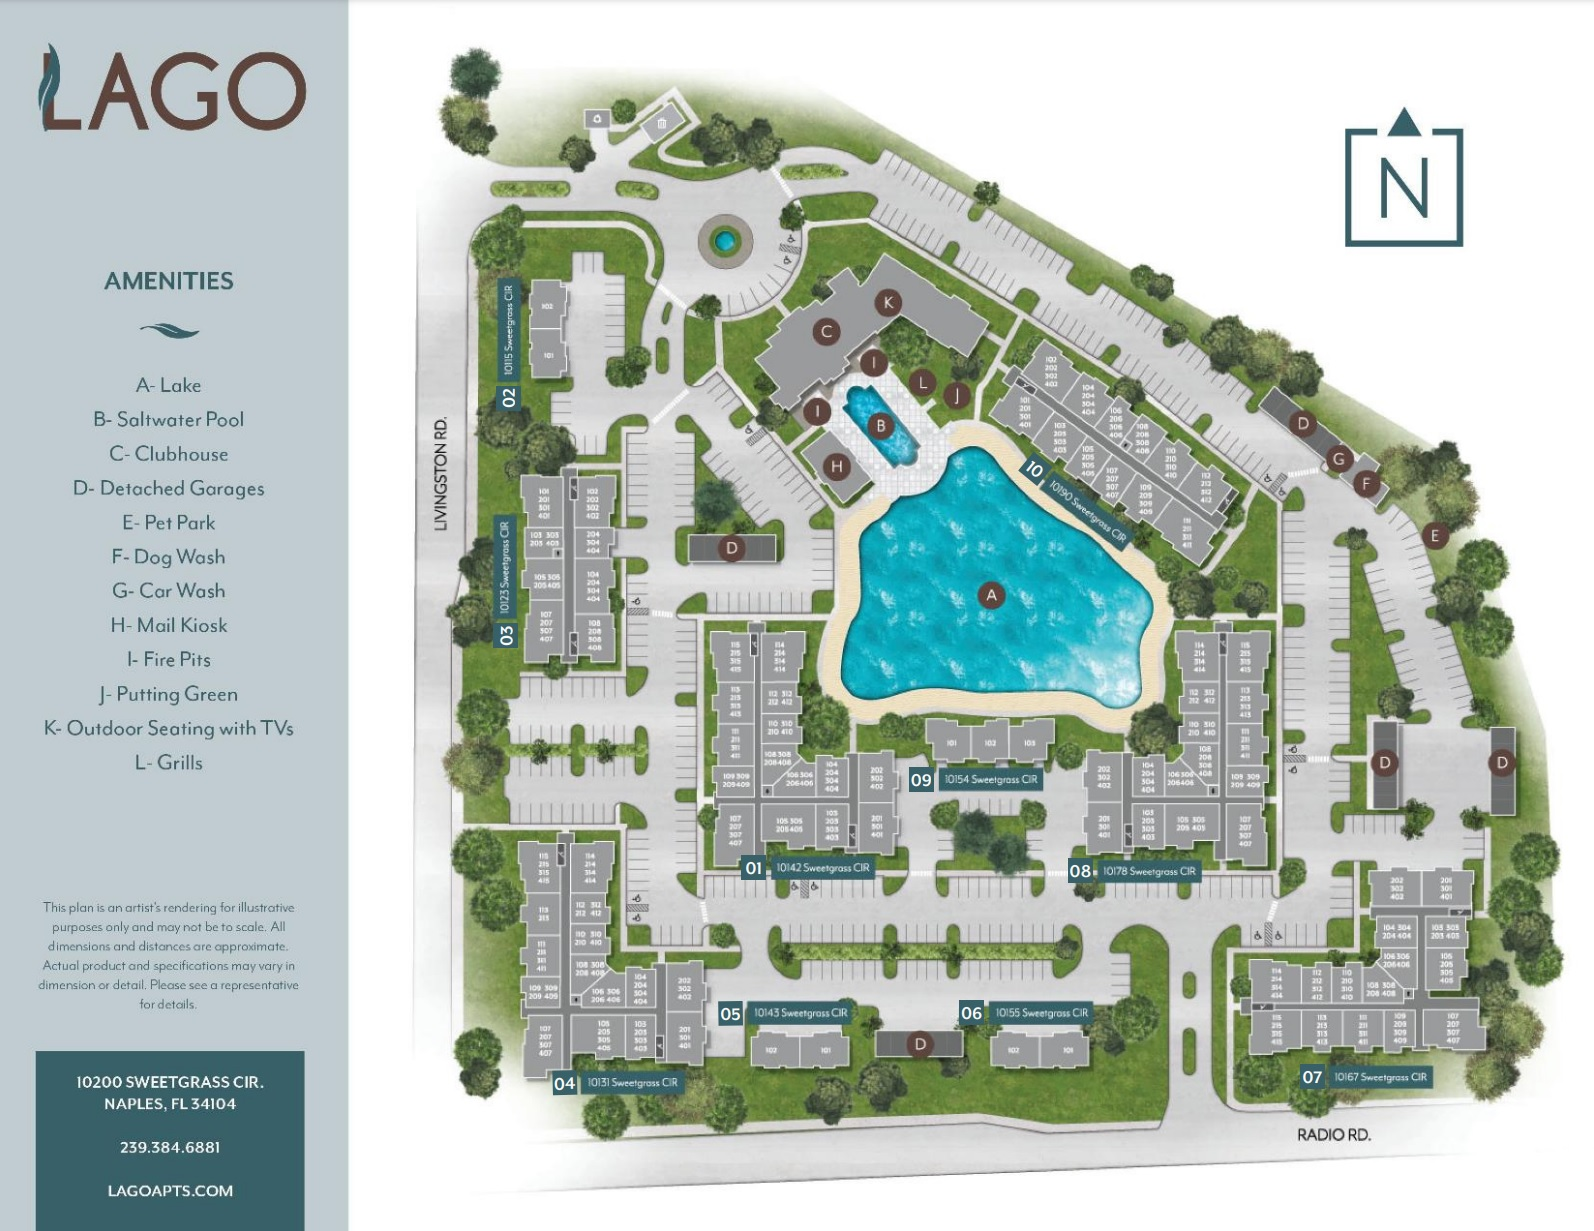 Lago Naples Site Plan